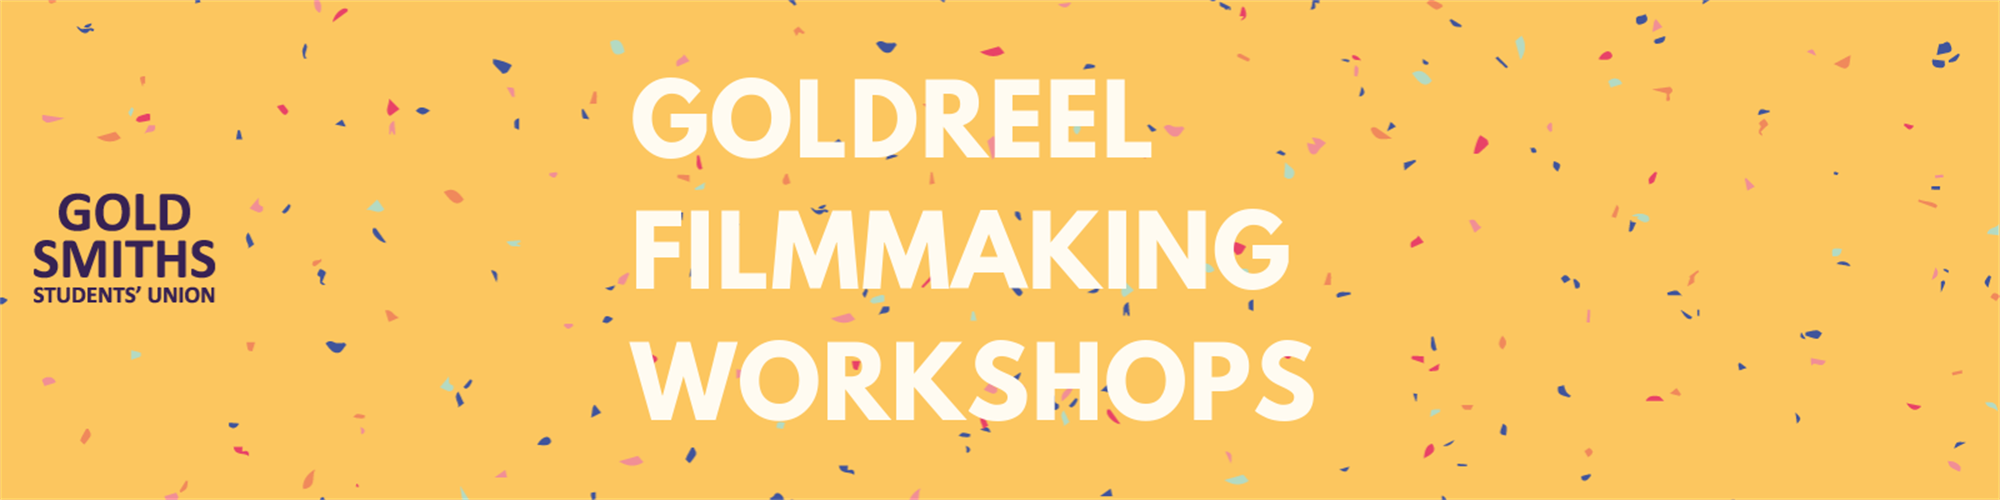 GoldReel Filmmaking Workshop